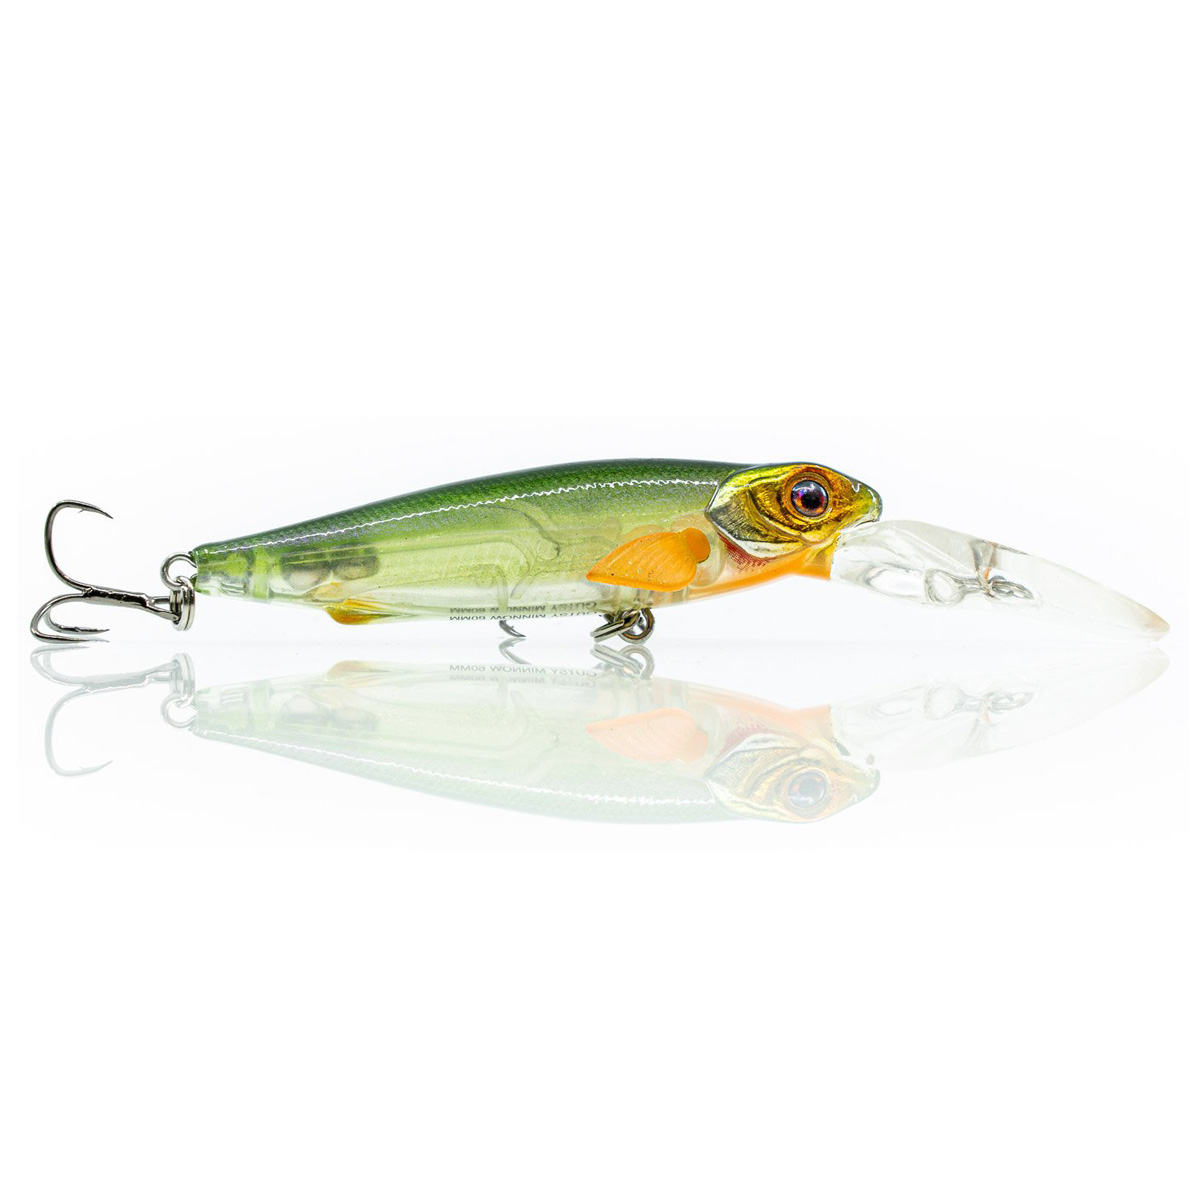 Chasebaits Gutsy Minnow Shallow Hard Body Lure Green Pearl